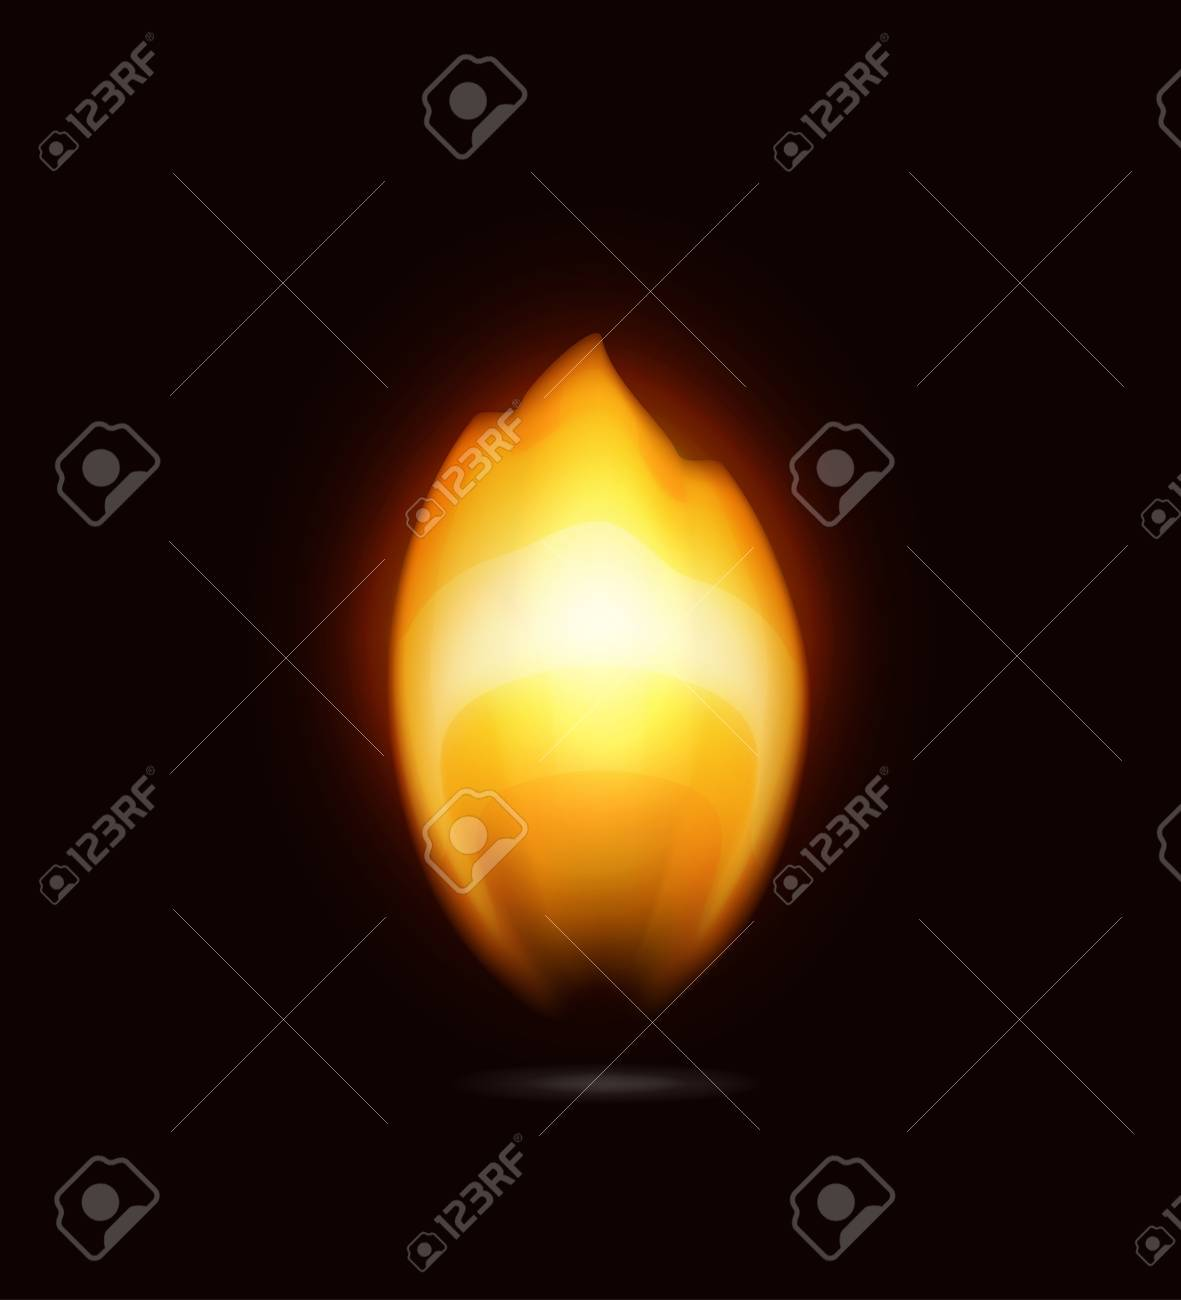 Flame on black, icon Stock Vector - 16145550